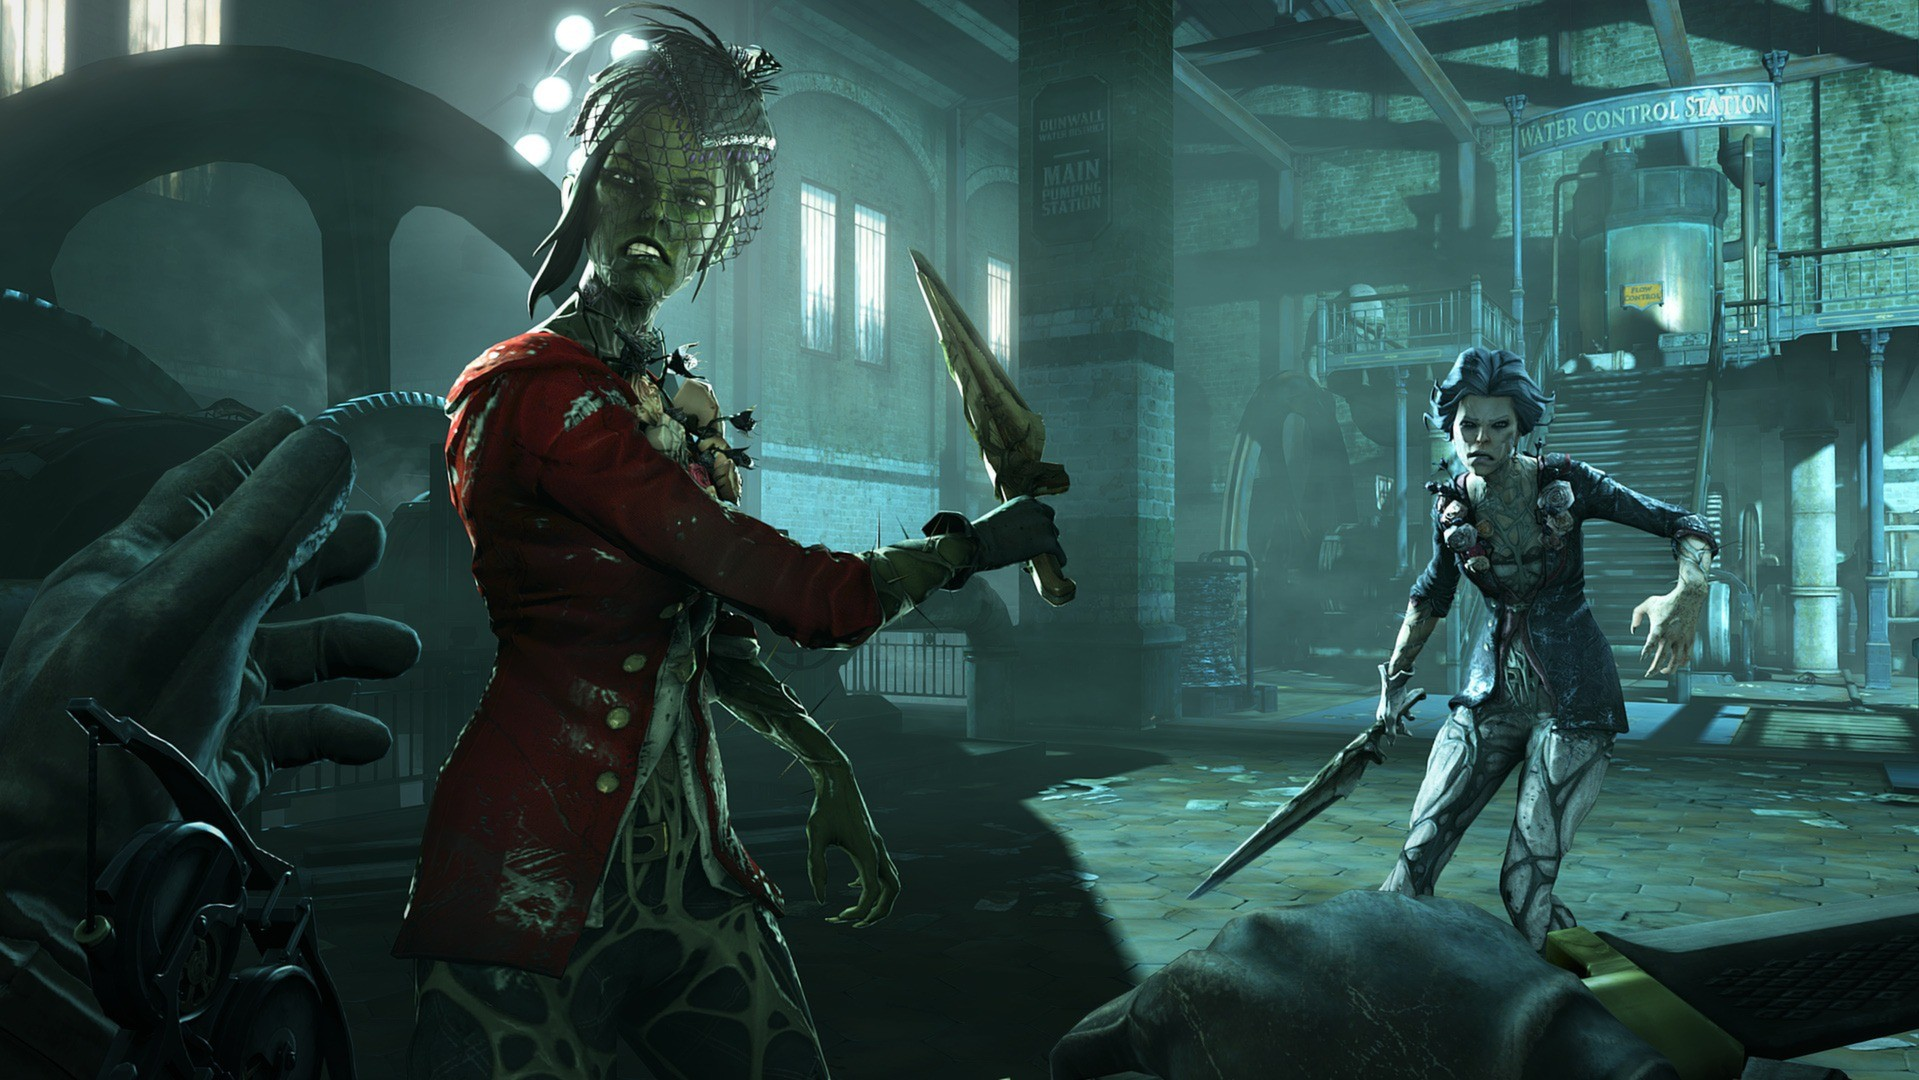 Køb Dishonored: The Brigmore Witches Steam